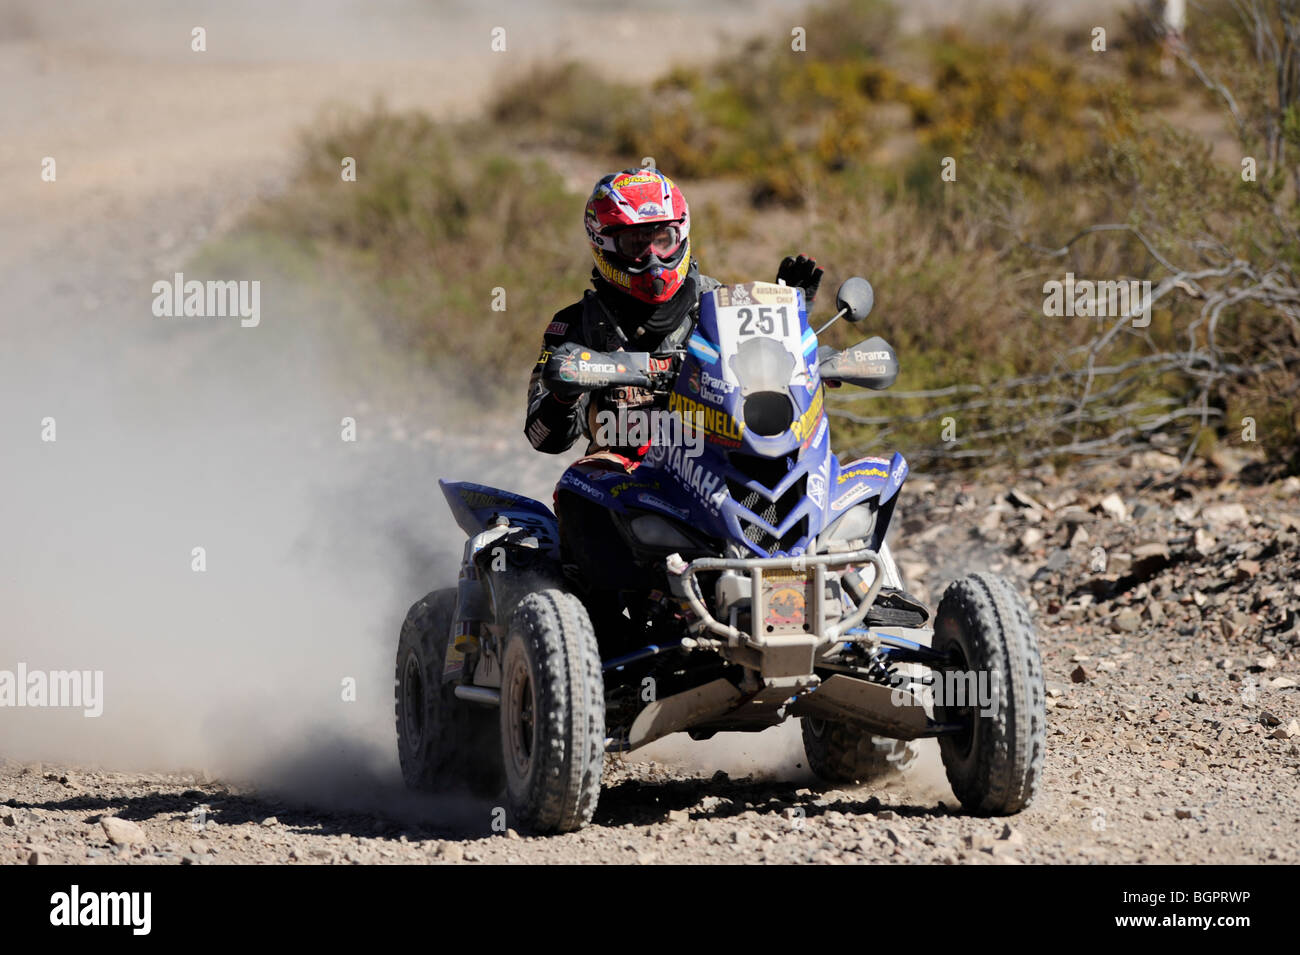 Yamaha Quad Stock Photos & Yamaha Quad Stock Images - Alamy